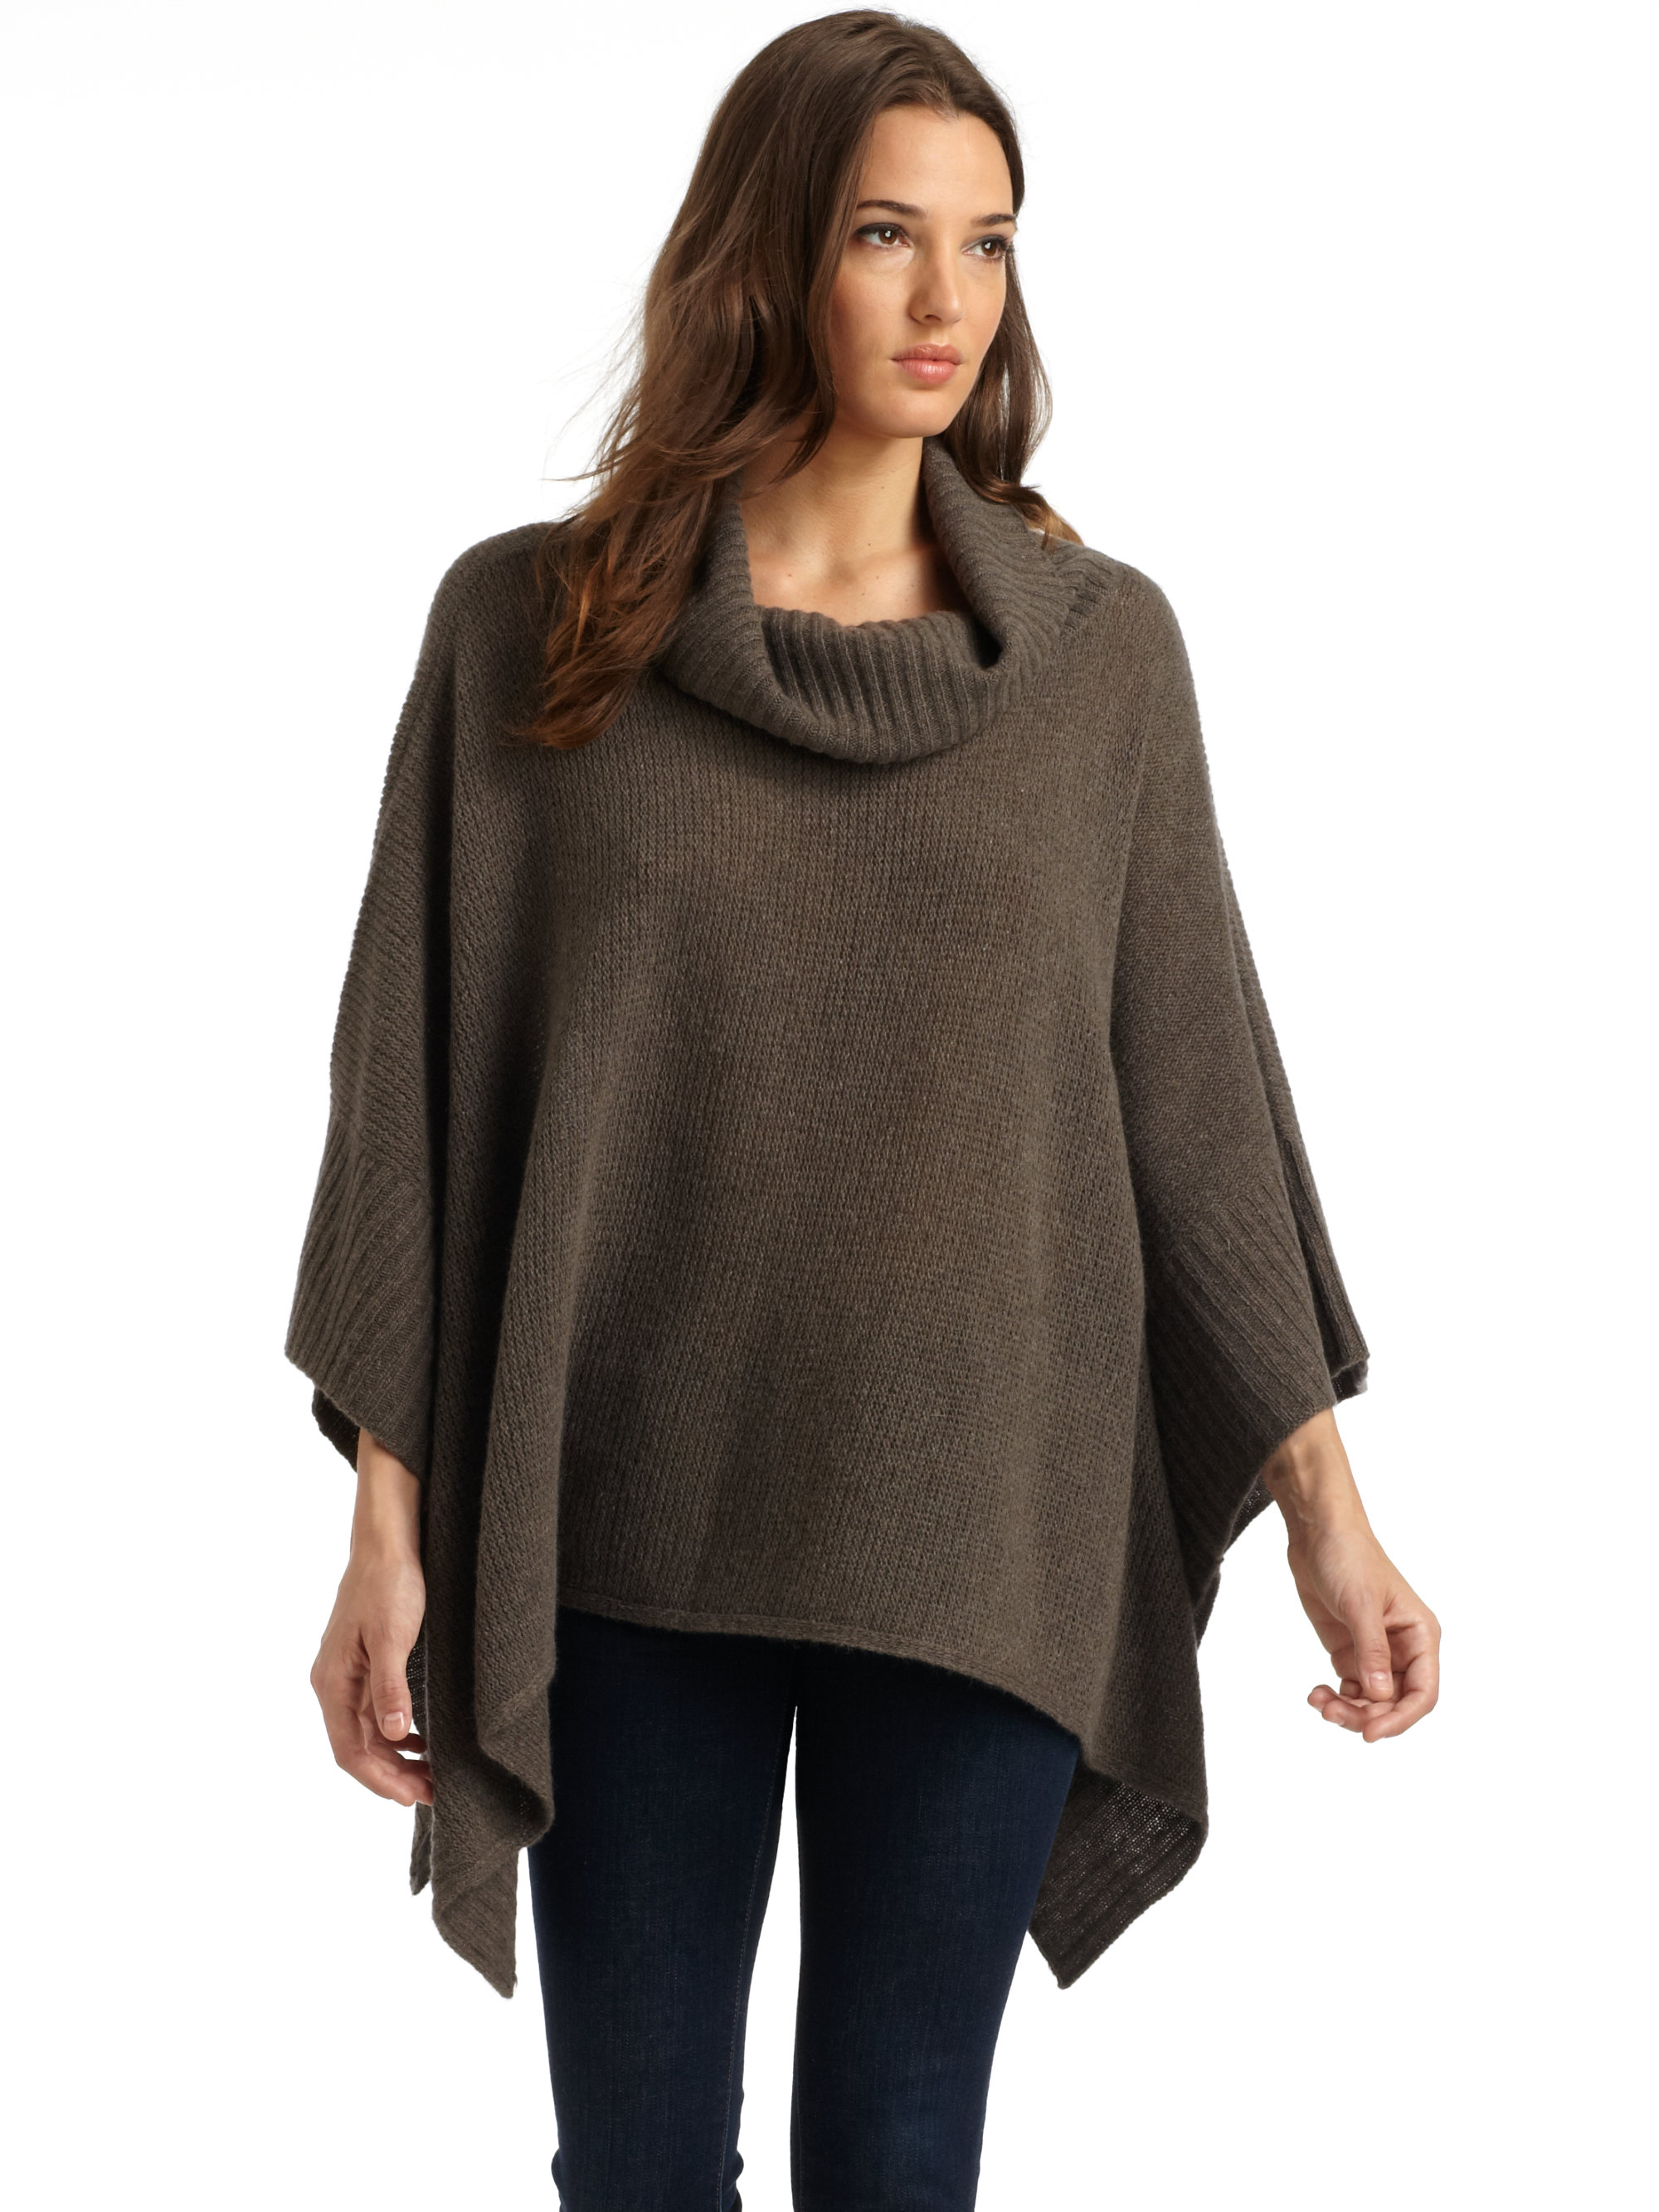 Eileen fisher Wool Cashmere Knit Poncho Sweater in Brown | Lyst